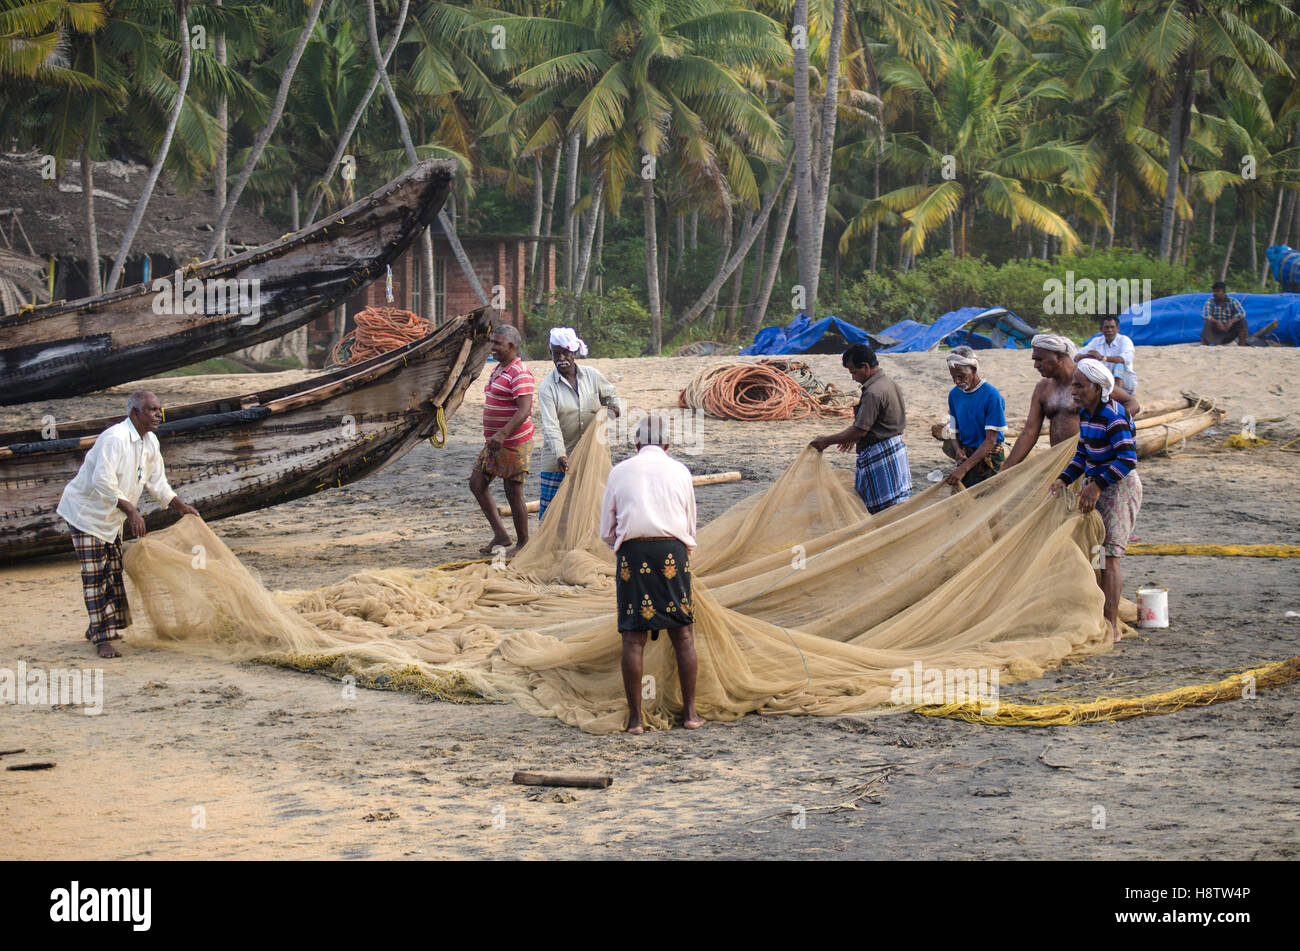 Fishermen, Varkala beach, Kerala, South India Stock Photo